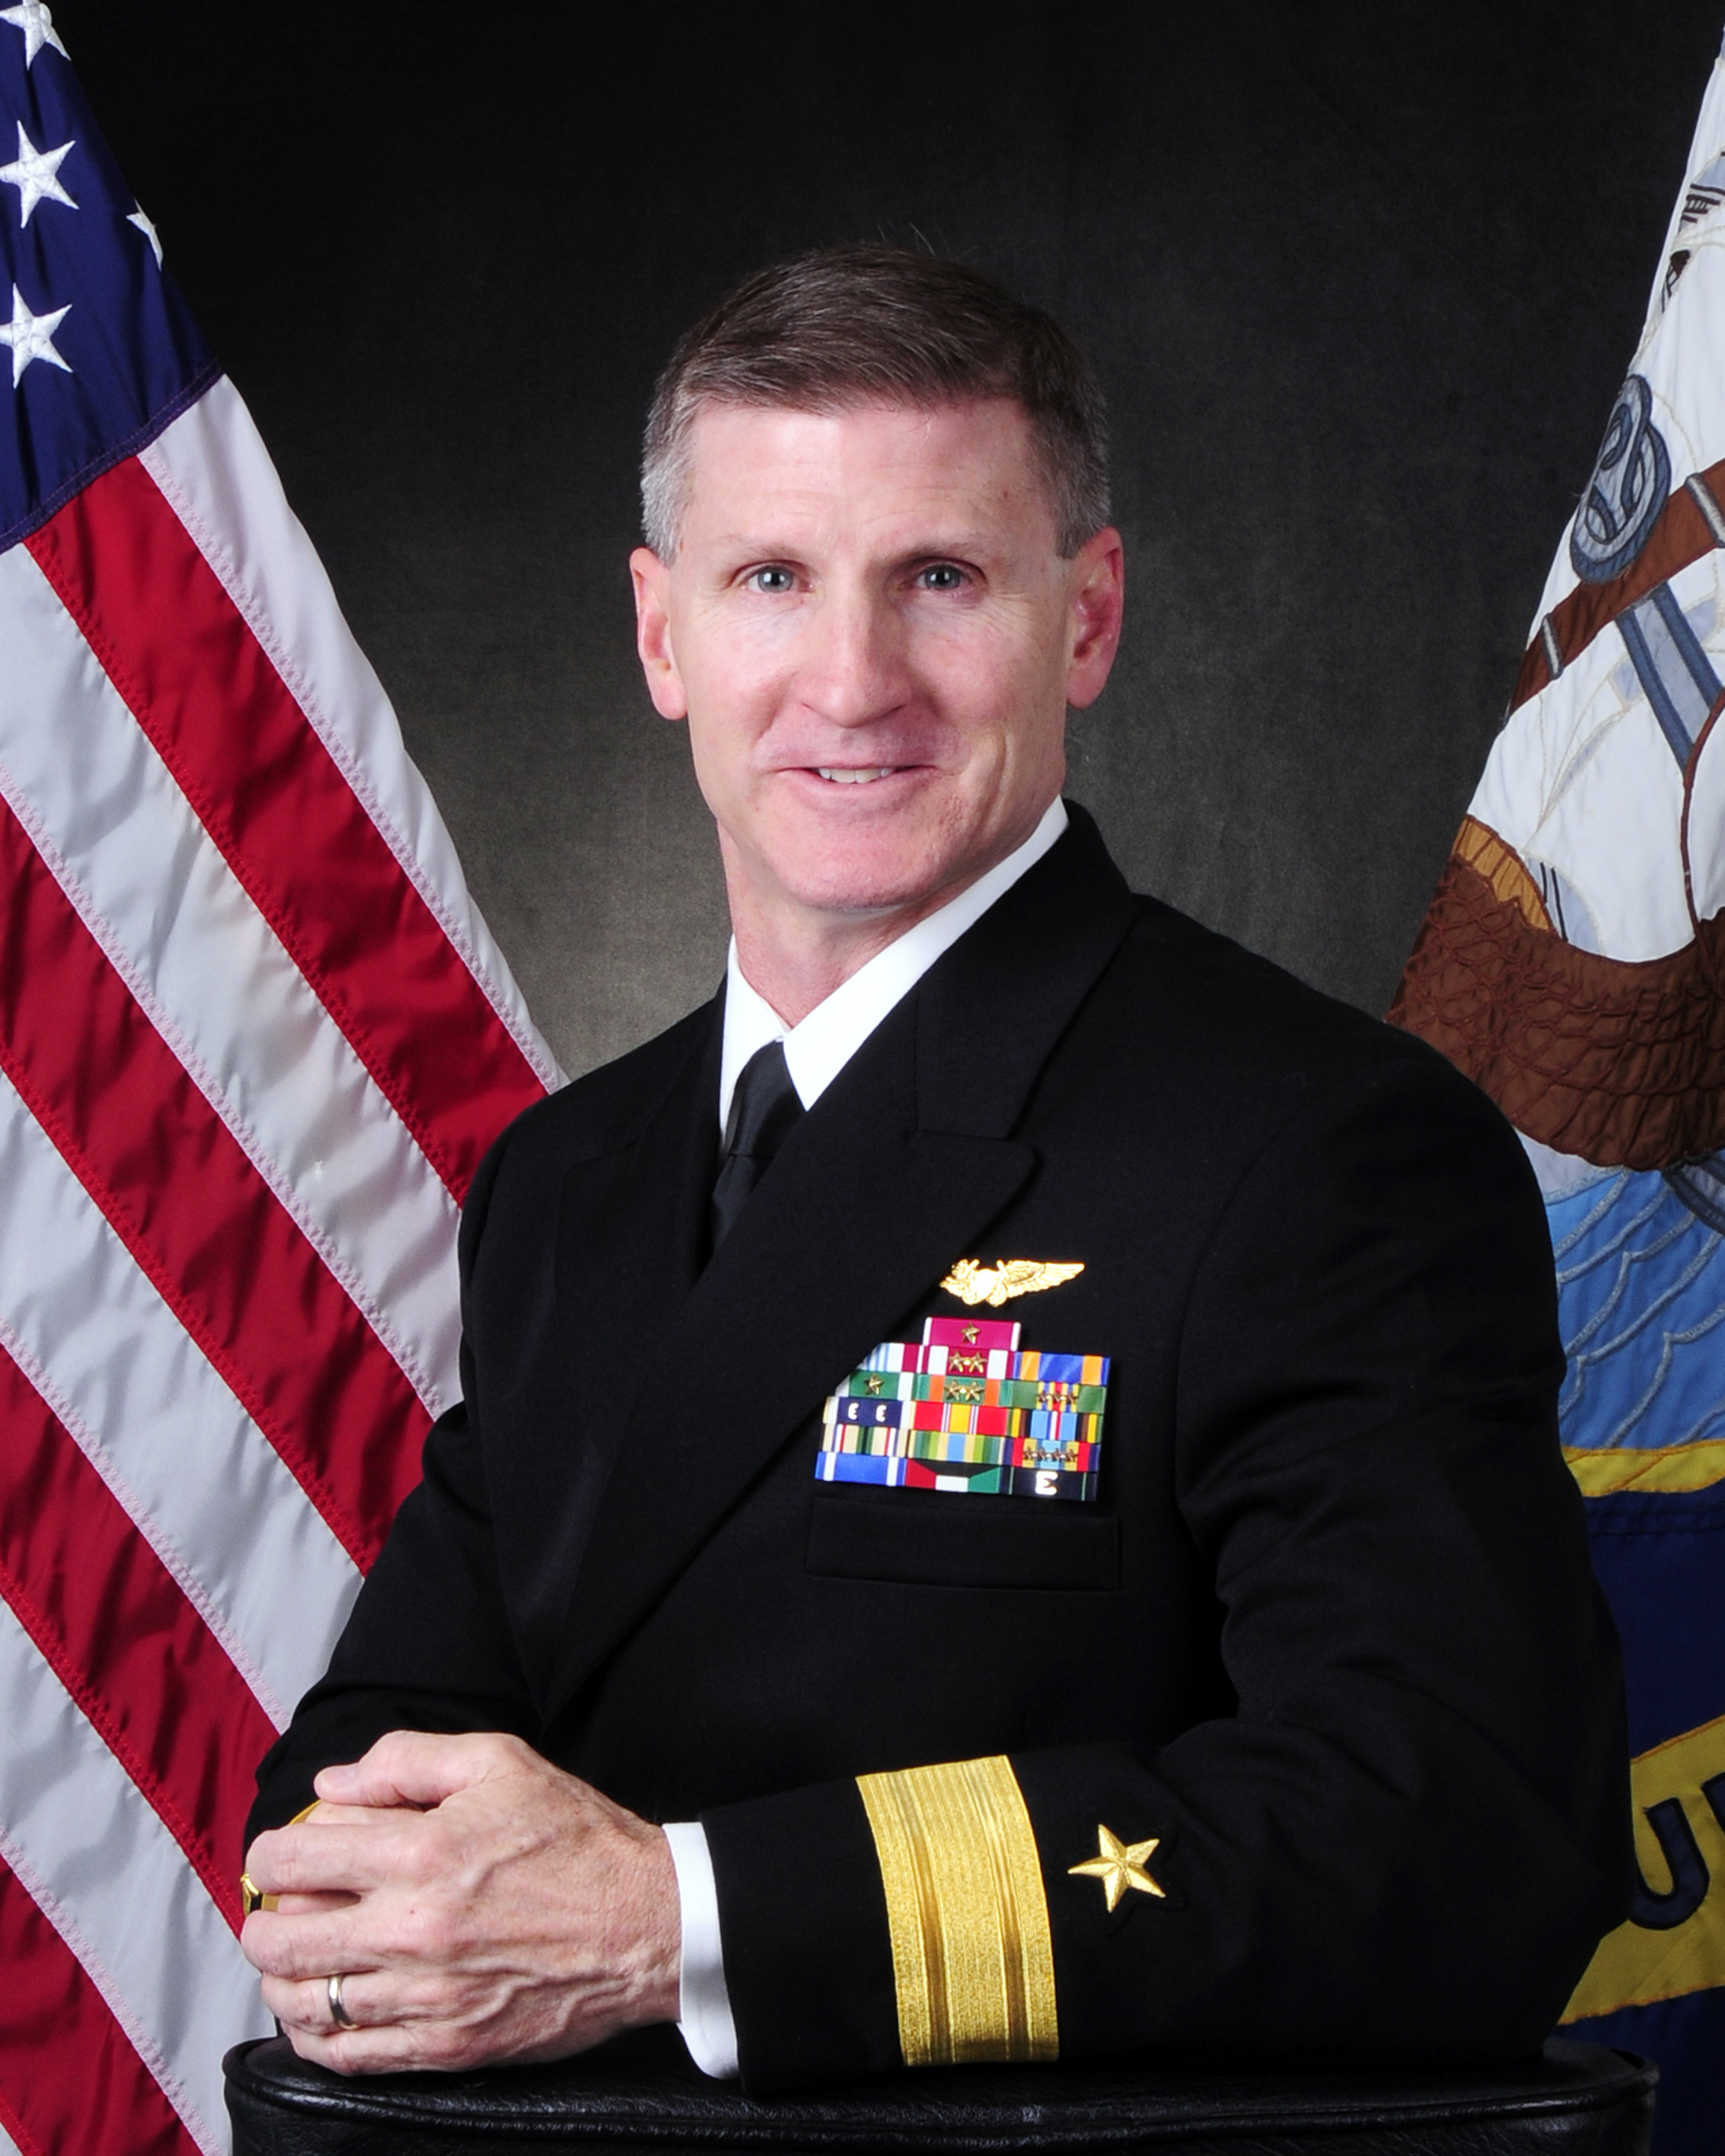 Rear Adm Markham Rich To Be Next S D Navy Mayor San Diego Business Journal